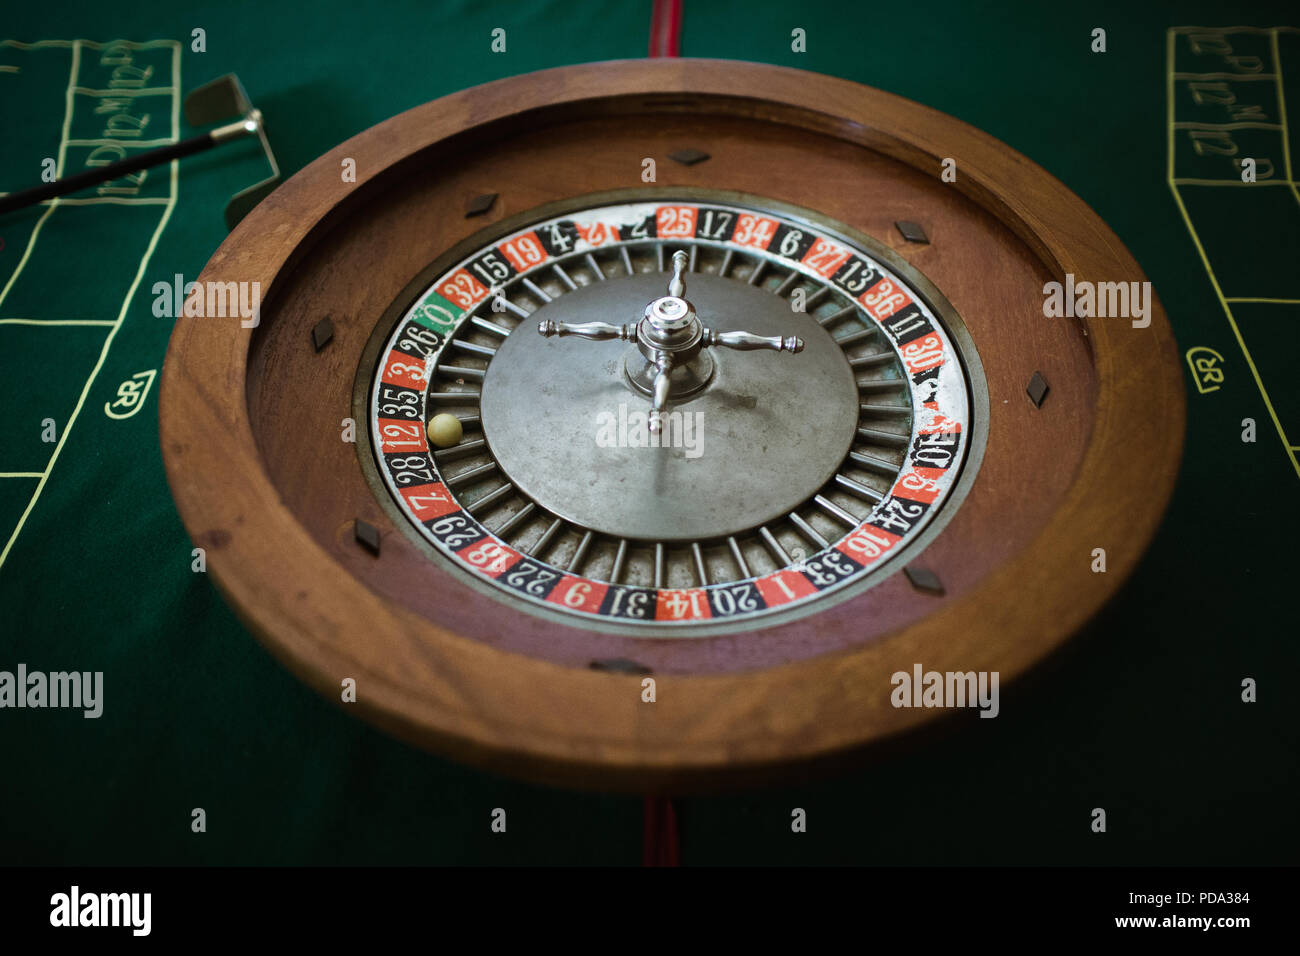 Roulette wheel with the winning ball on red twelve - Stock Image